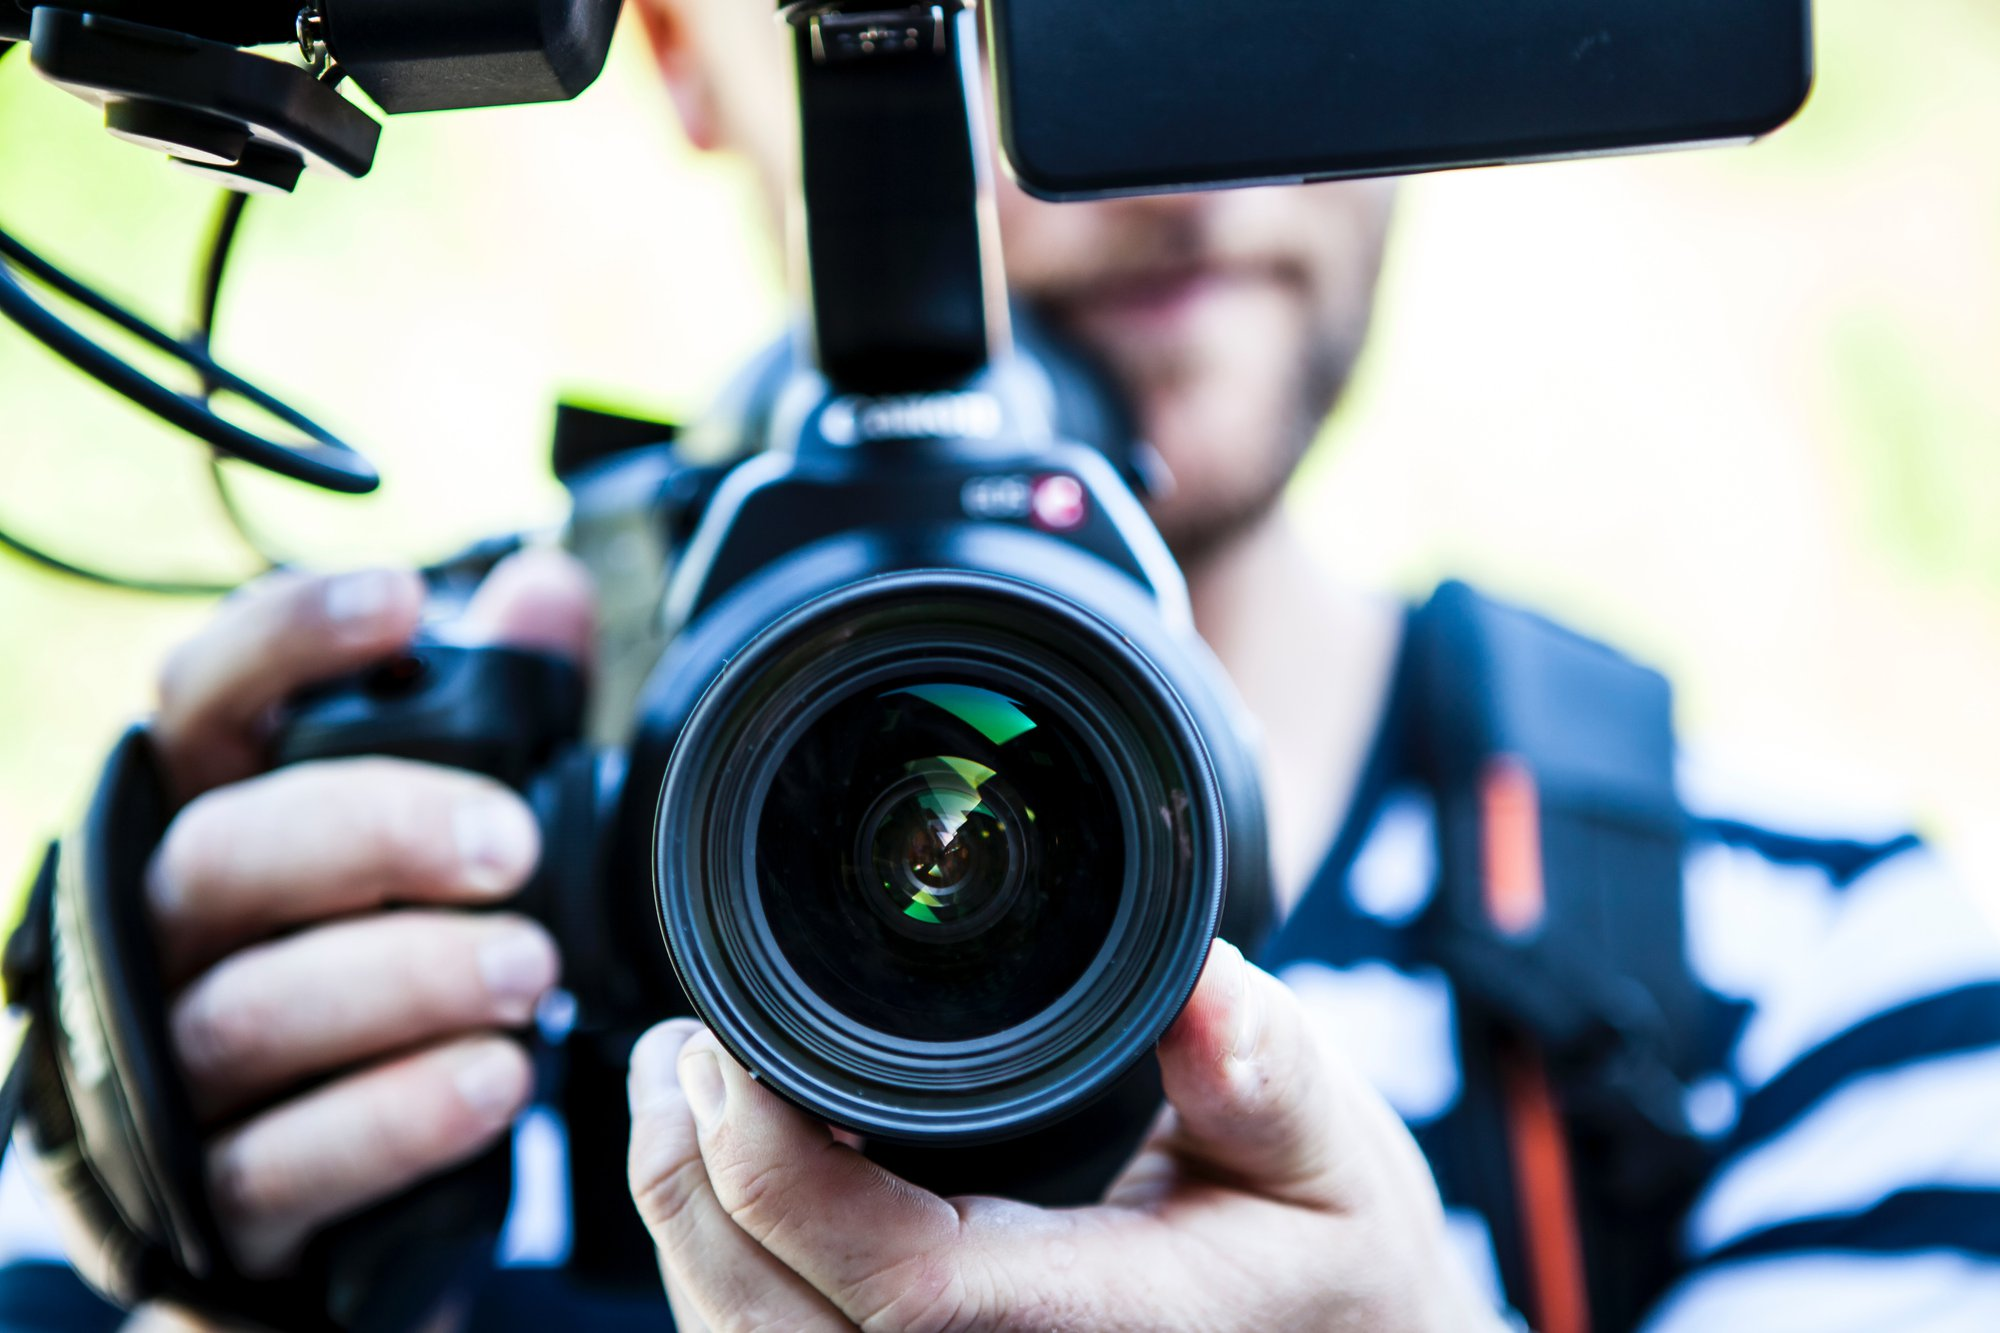 How to Get More Youtube Views by Maximizing Your Existing Videos